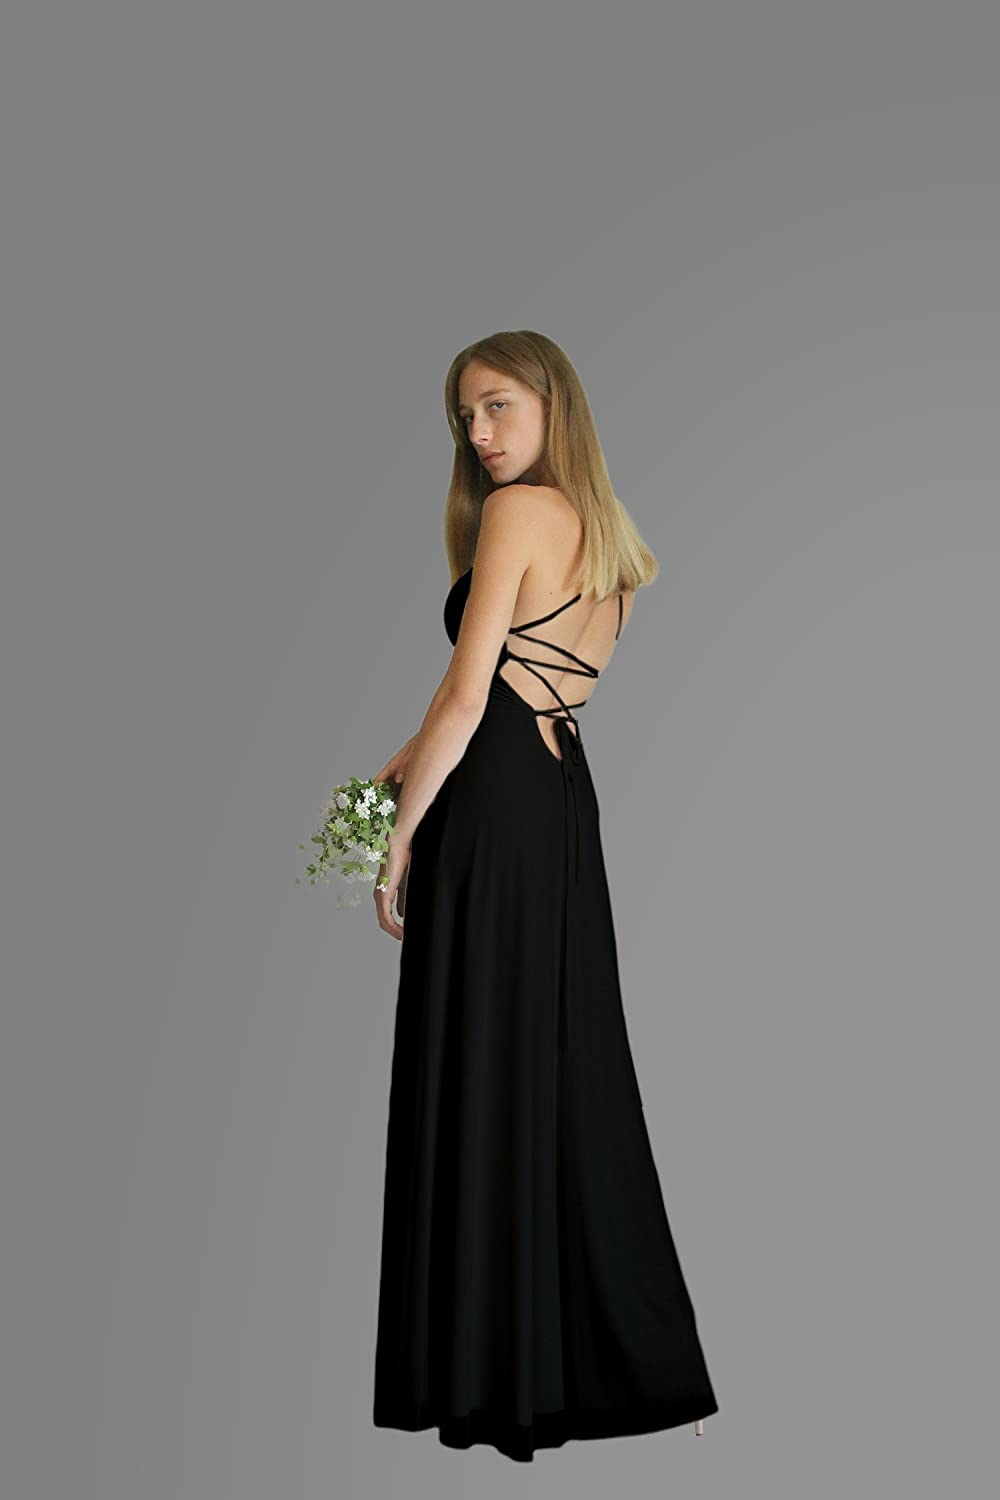 Amazon Black Evening Dress Maxi Long Dress For Wedding Or